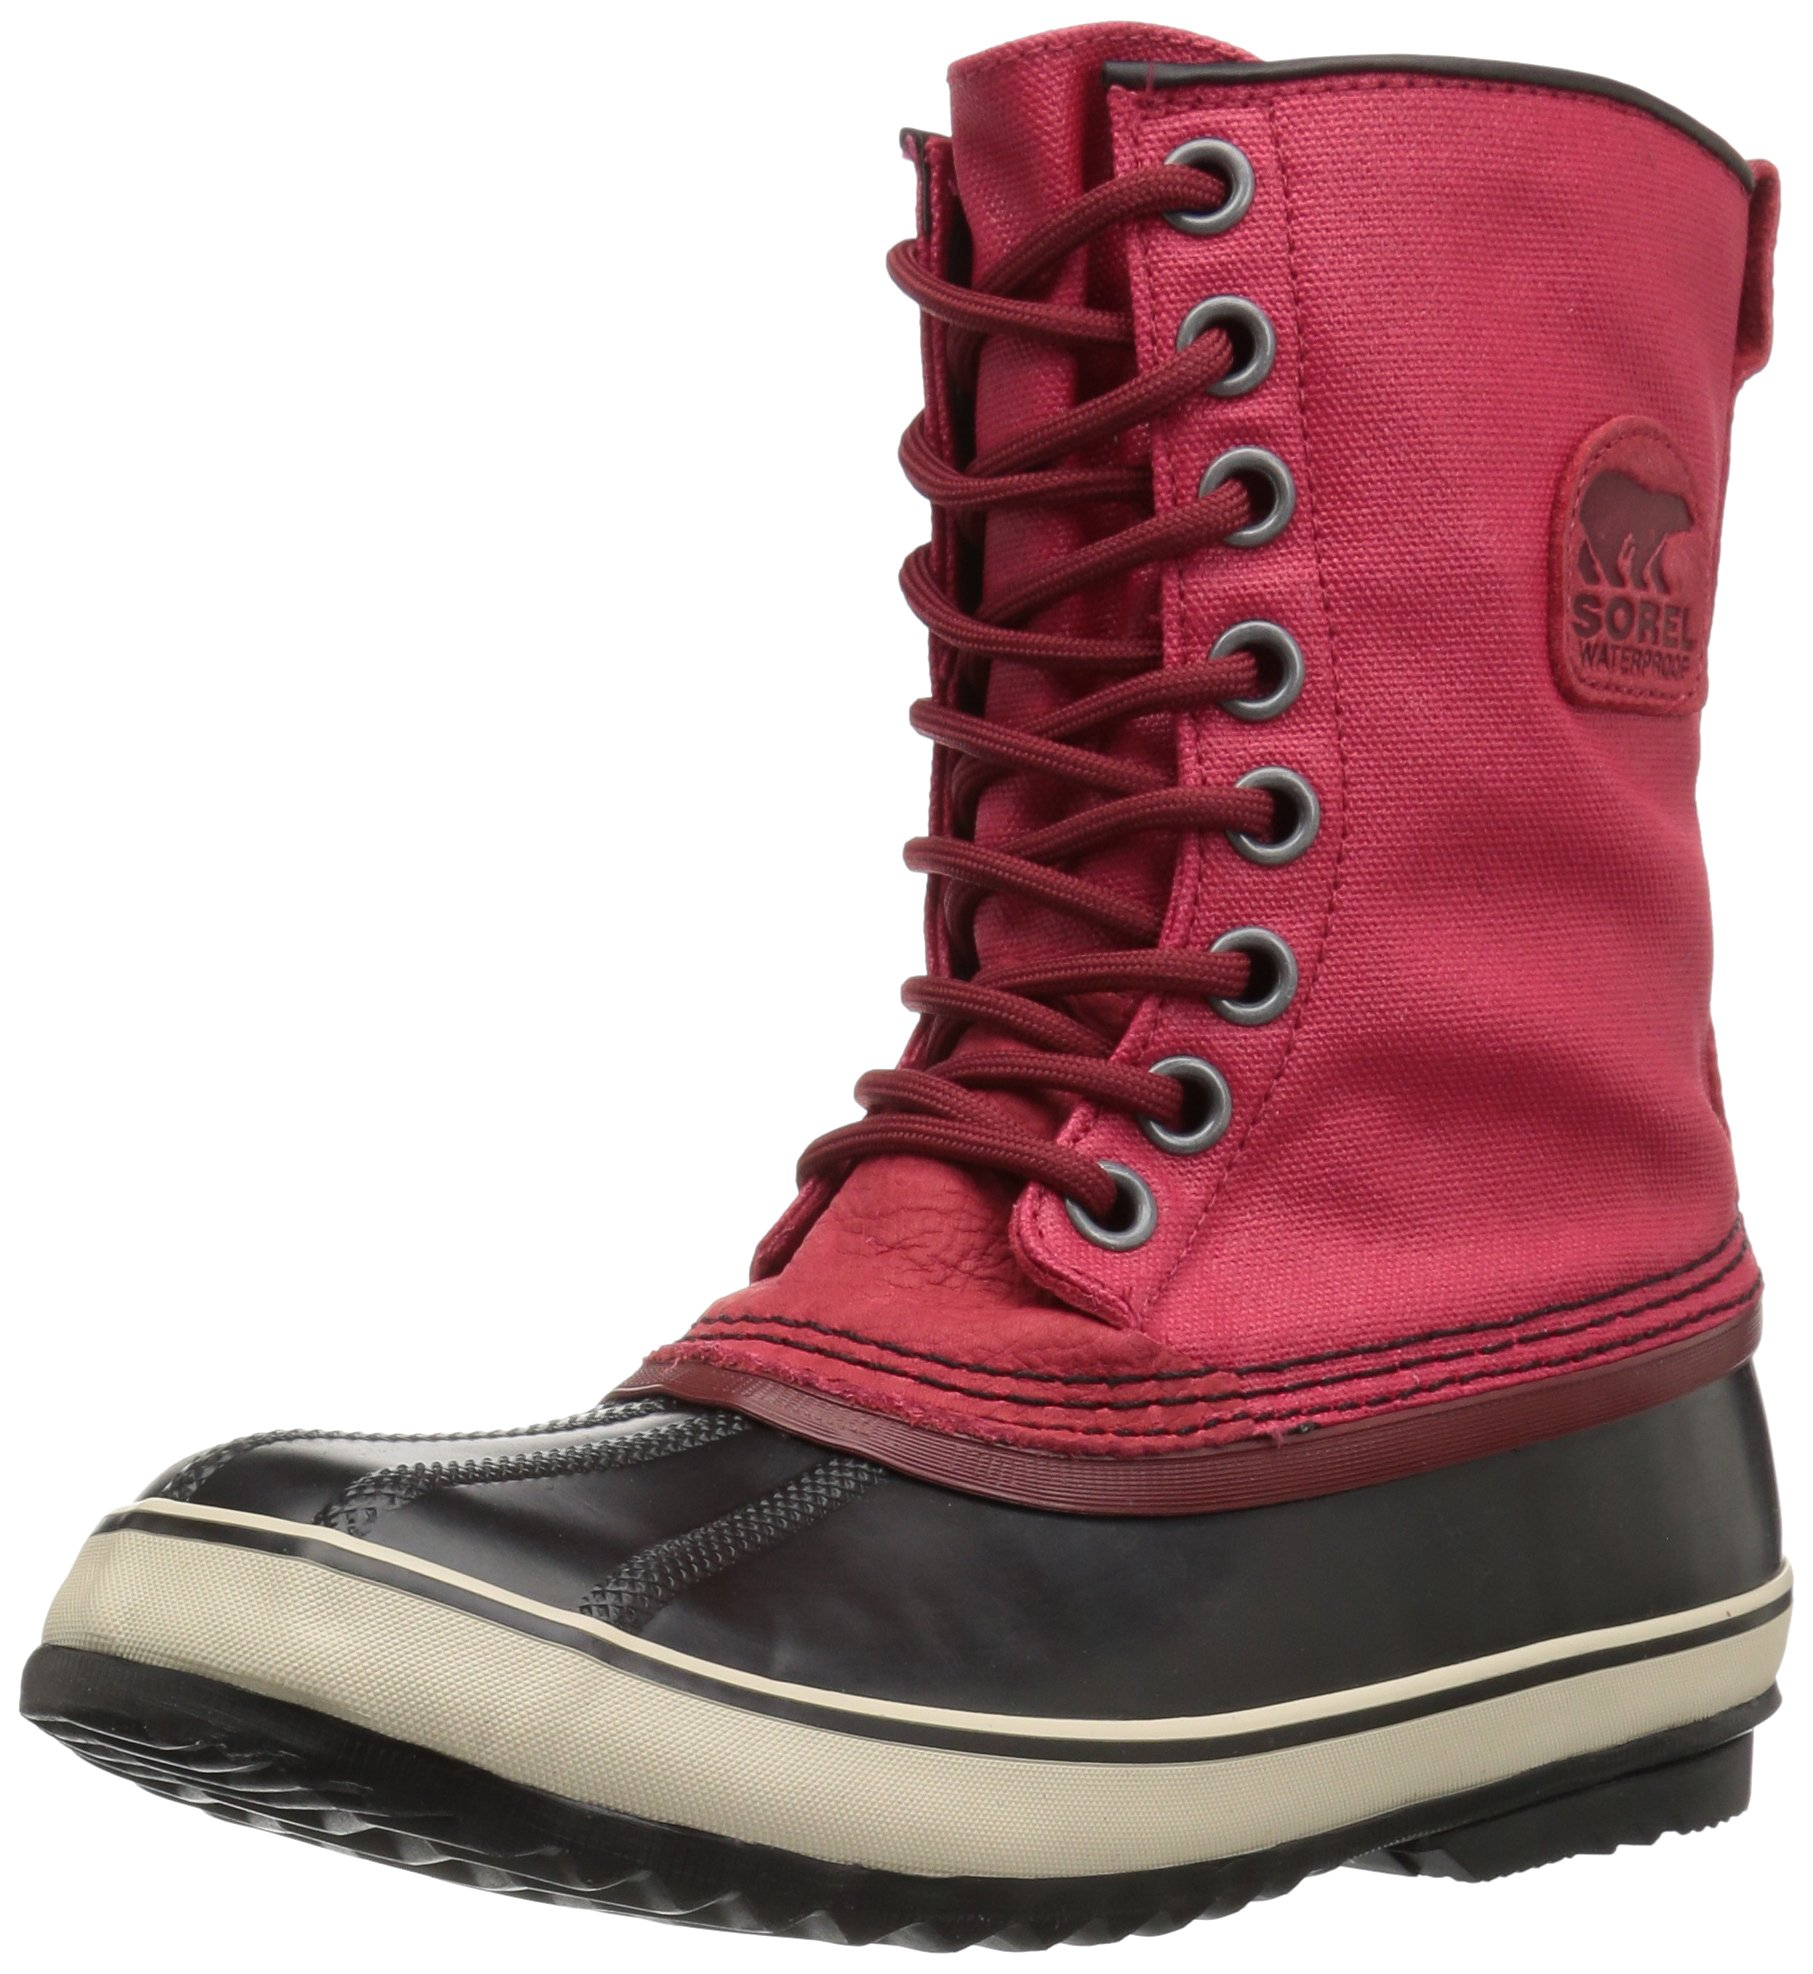 Sorel Women's 1964 Premium CVS Snow Boot, Candy Apple, Red Element, 12 B US